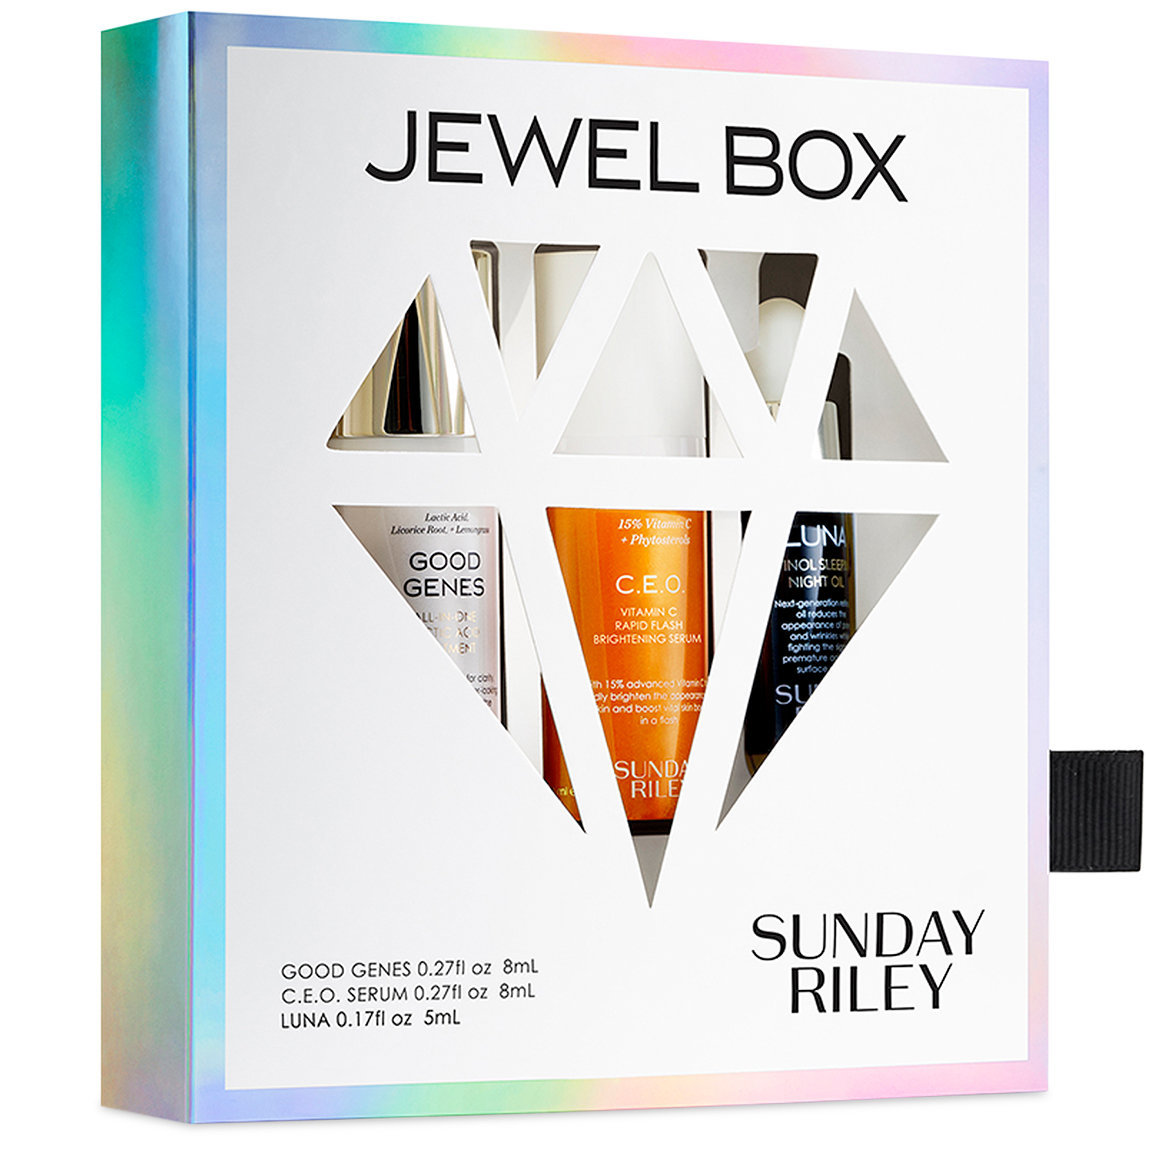 Sunday Riley Jewel Box product swatch.